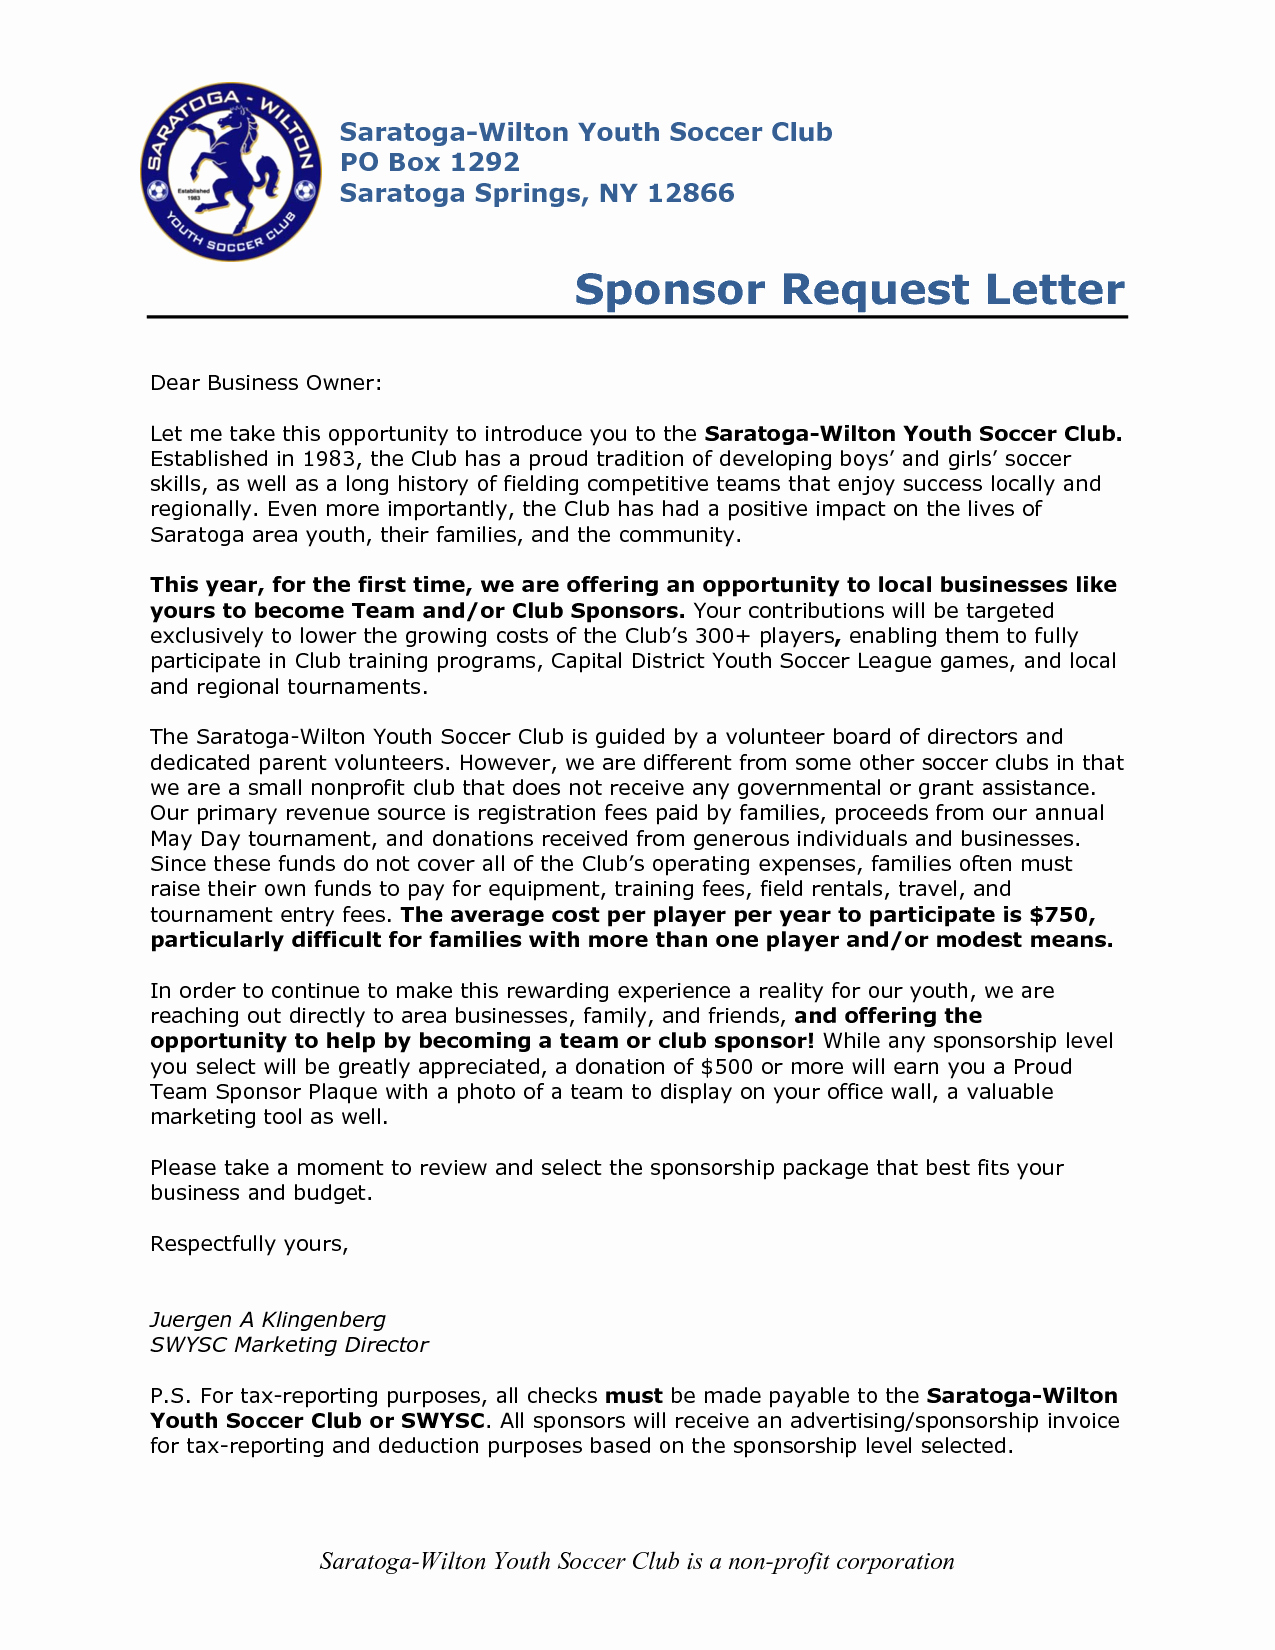 Youth Football Sponsorship Letter Template - Sports Team Sponsorship Proposal Template Best Sponsorship Letter